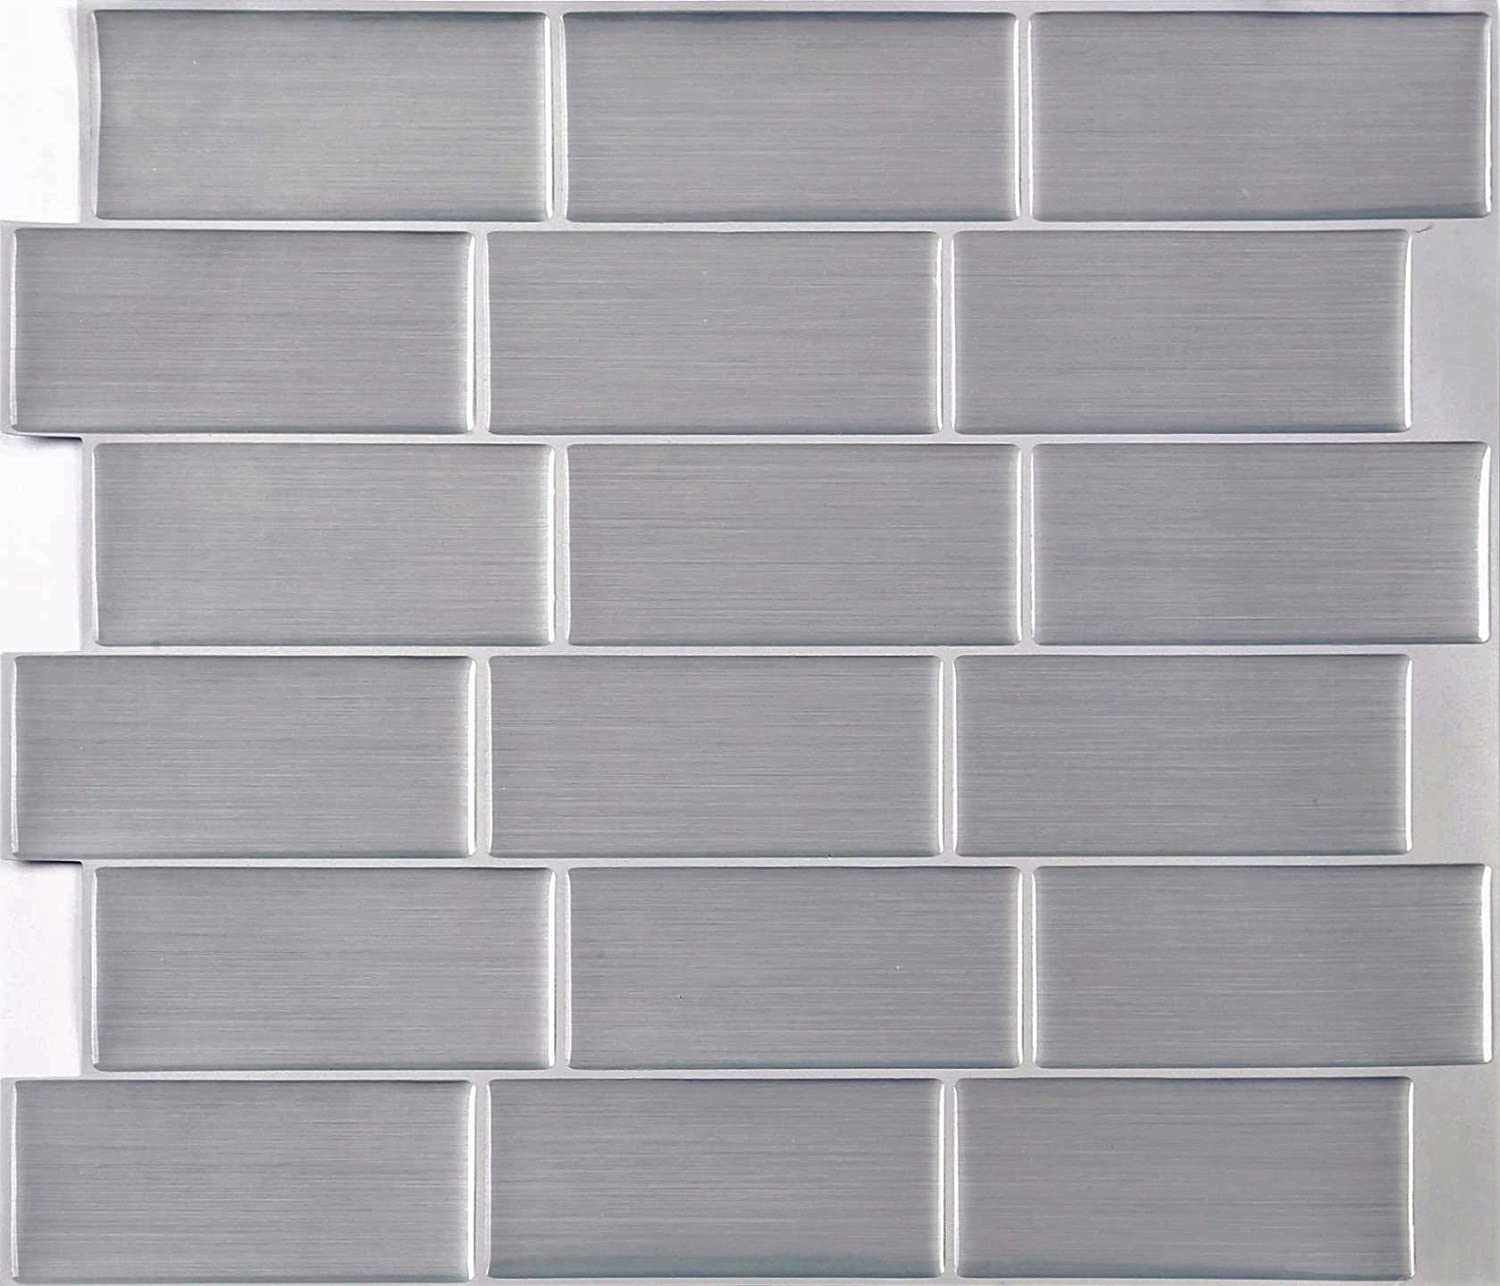 4 Pack of Brushed Steel Effect 3D Gel Mosaic Effect Self-Adhesive Tile Sheets (3D0009) Grand Taps